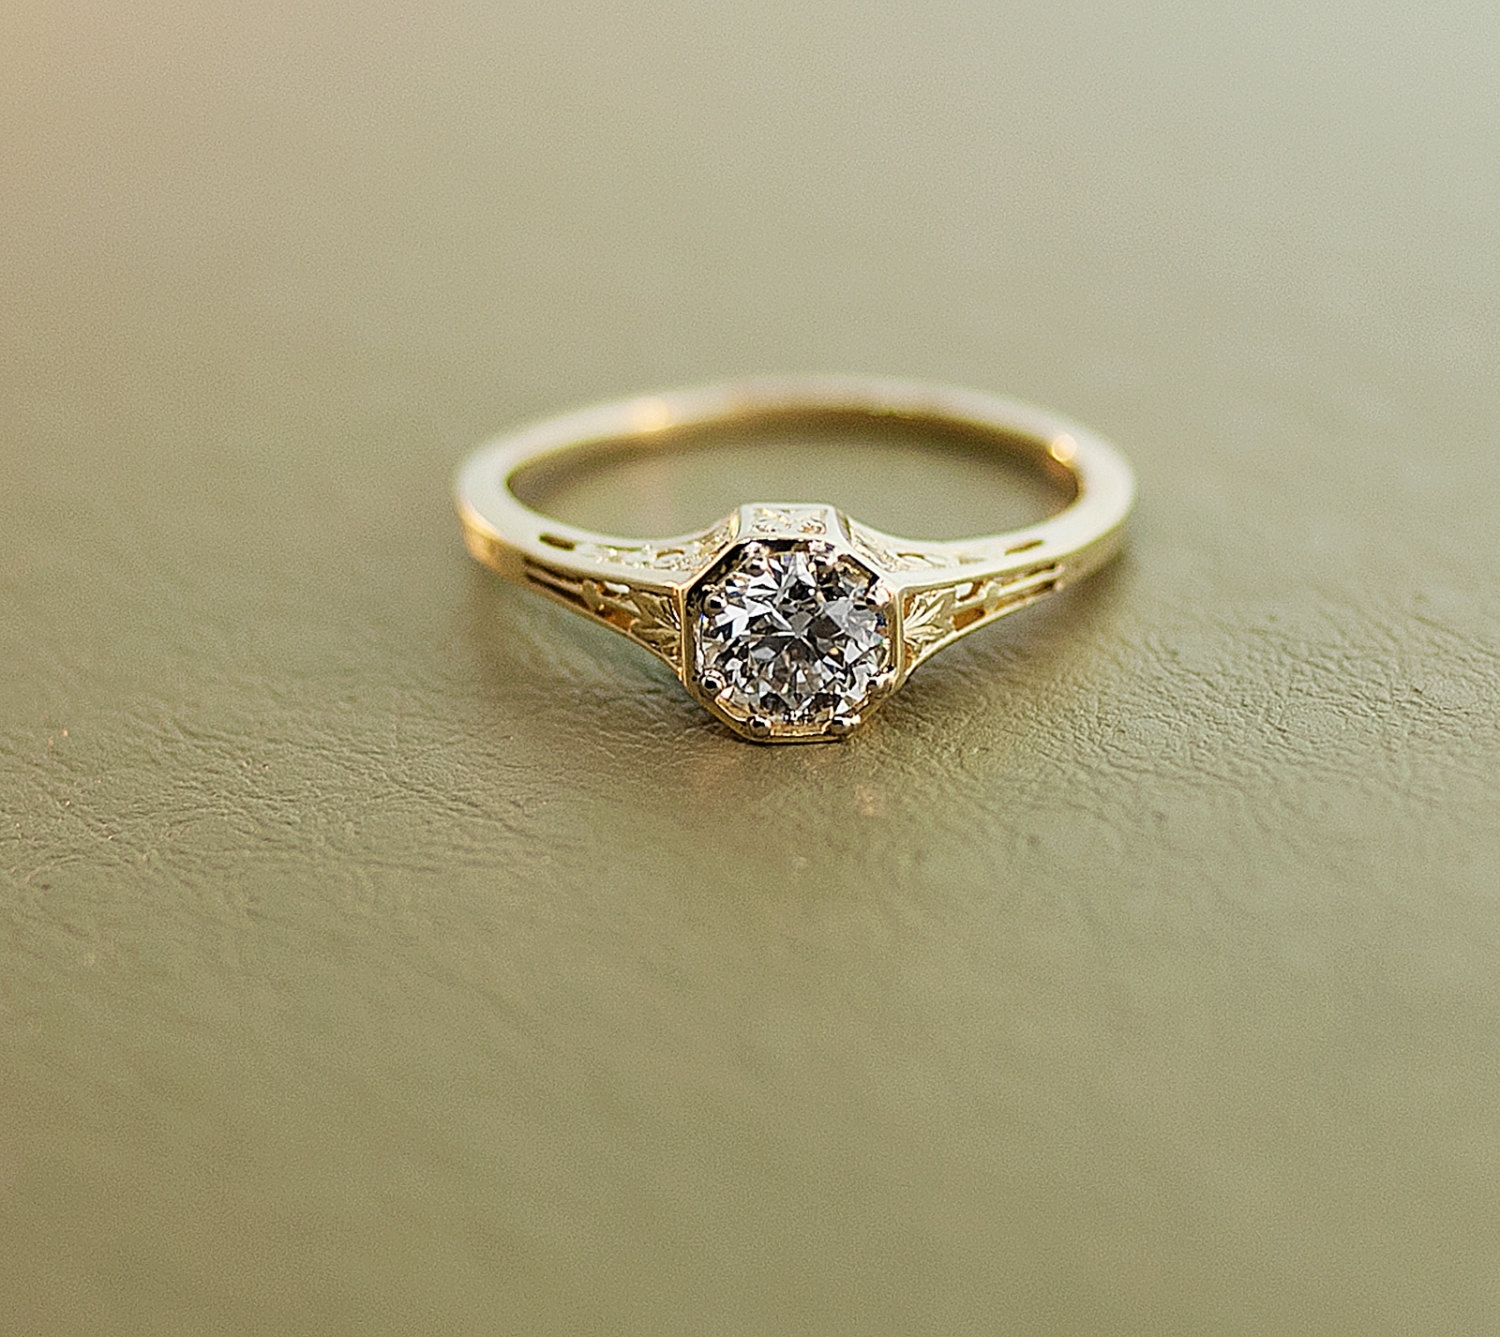 Yellow Gold Antique Engagement Rings | Wedding, Promise, Diamond With Regard To Best And Newest Vintage Style Yellow Gold Engagement Rings (View 15 of 15)